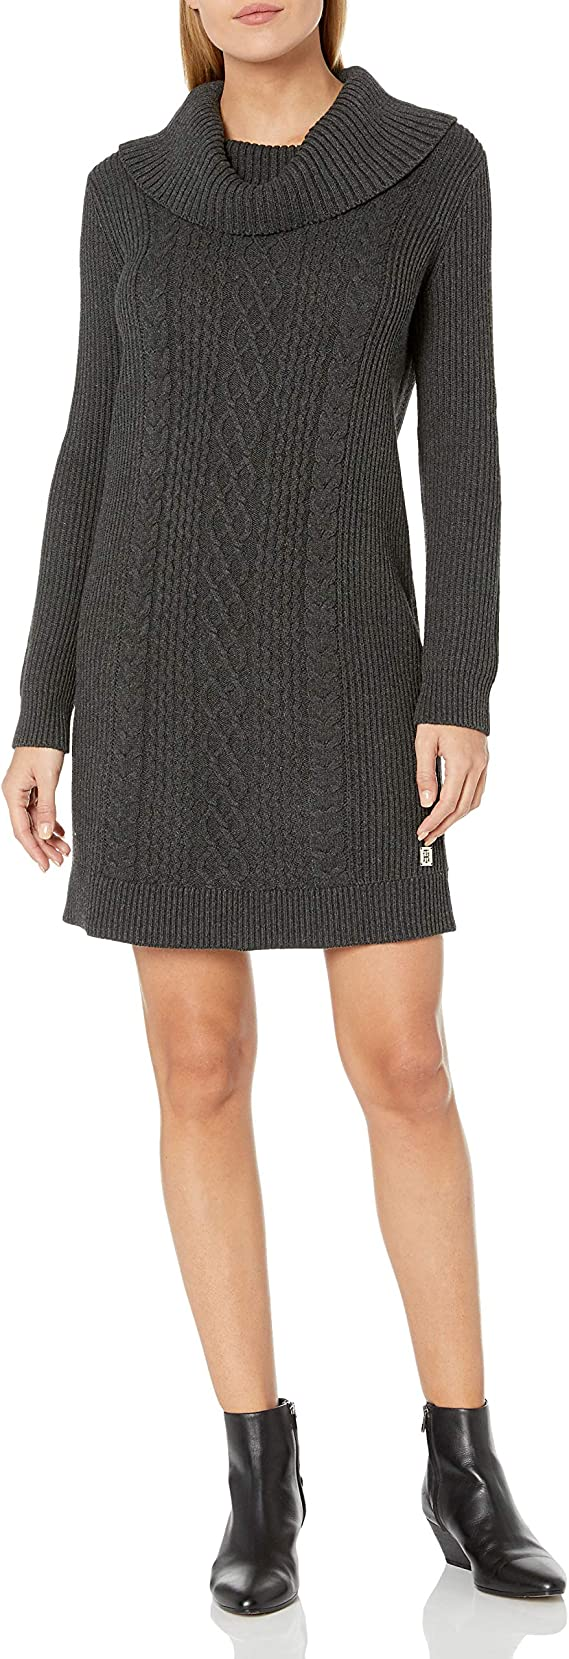 Tommy Hilfiger Women's Cowl neck Sweater Dress Long sleeve cute Sweater dress for women